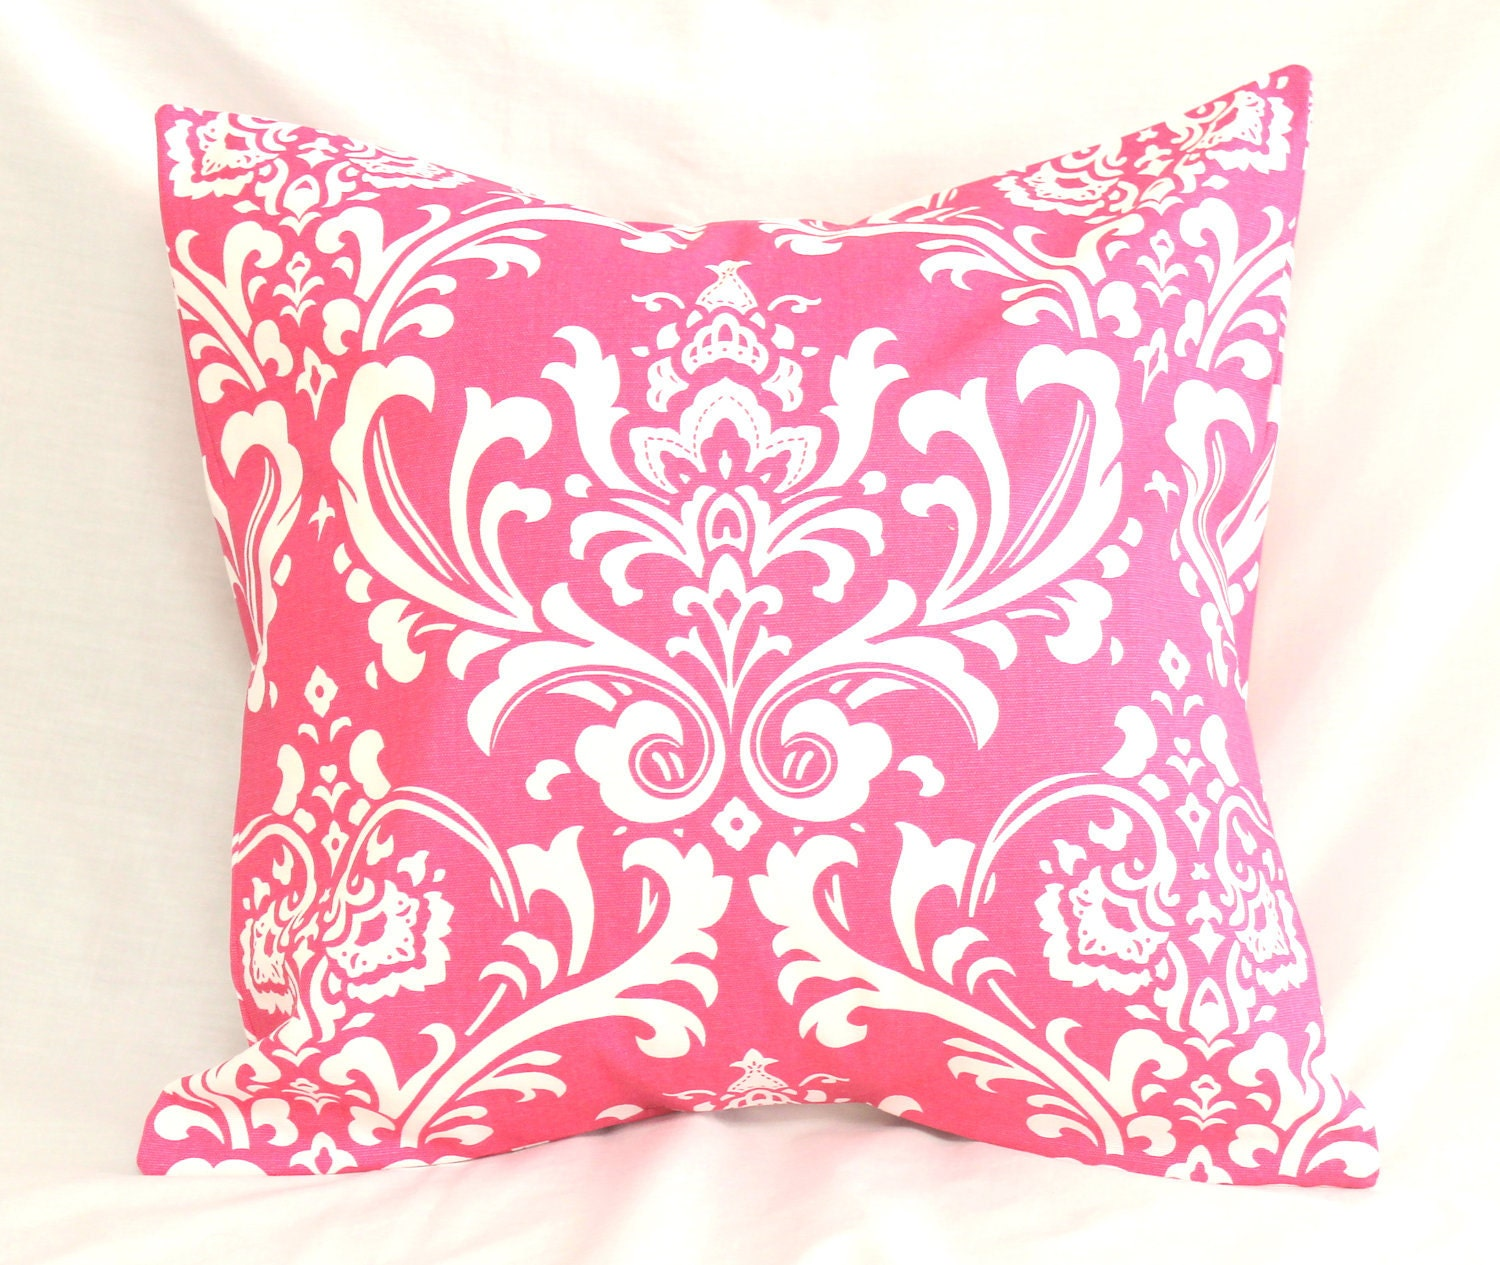 Decorative Pillow Cover Preppy Hot Pink Damask  18 X 18. Room Divider Fish Tank. Decorative Cordless Table Lamps. Decorative Lanyards. Design A Room Layout. Ottoman For Living Room. Decorative Concrete Walkways. Japanese Home Decor. Vintage Decor For Bedroom